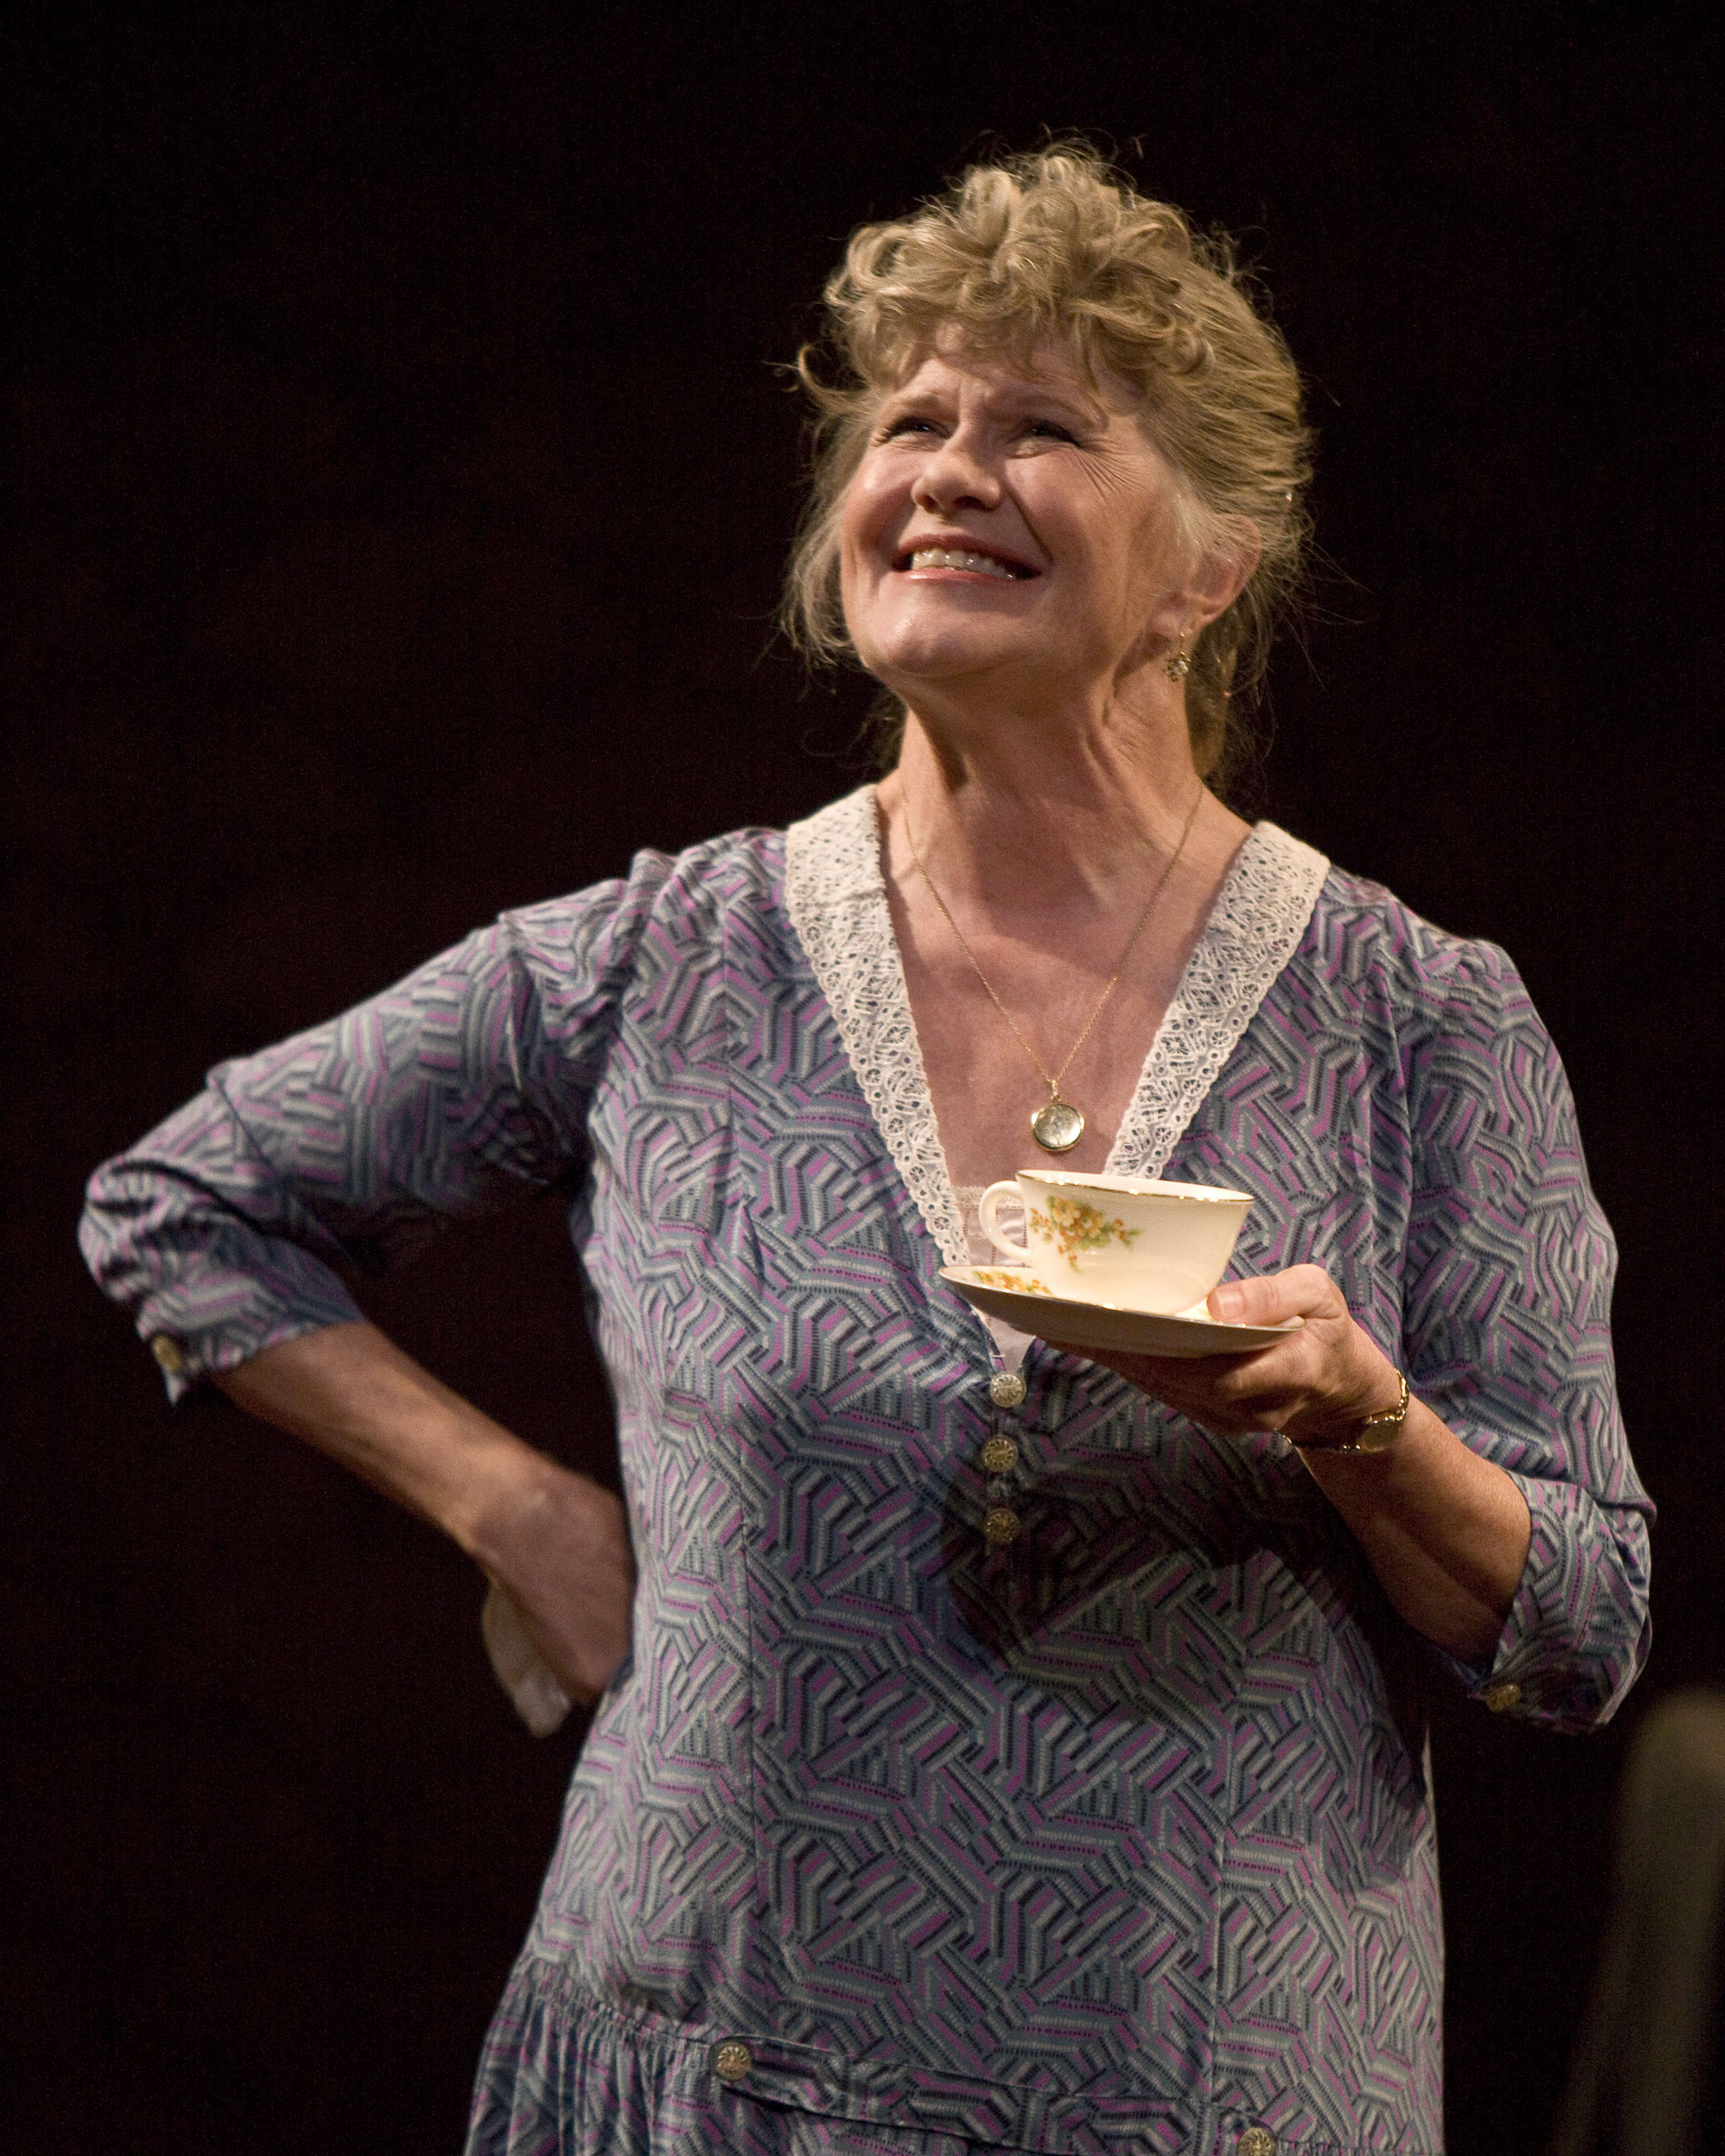 amanda wingfield glass menagerie Synopsis: the glass menagerie  it is dinnertime in the wingfield home and amanda regales, once again, tales of her many suitors as a young women in the south.